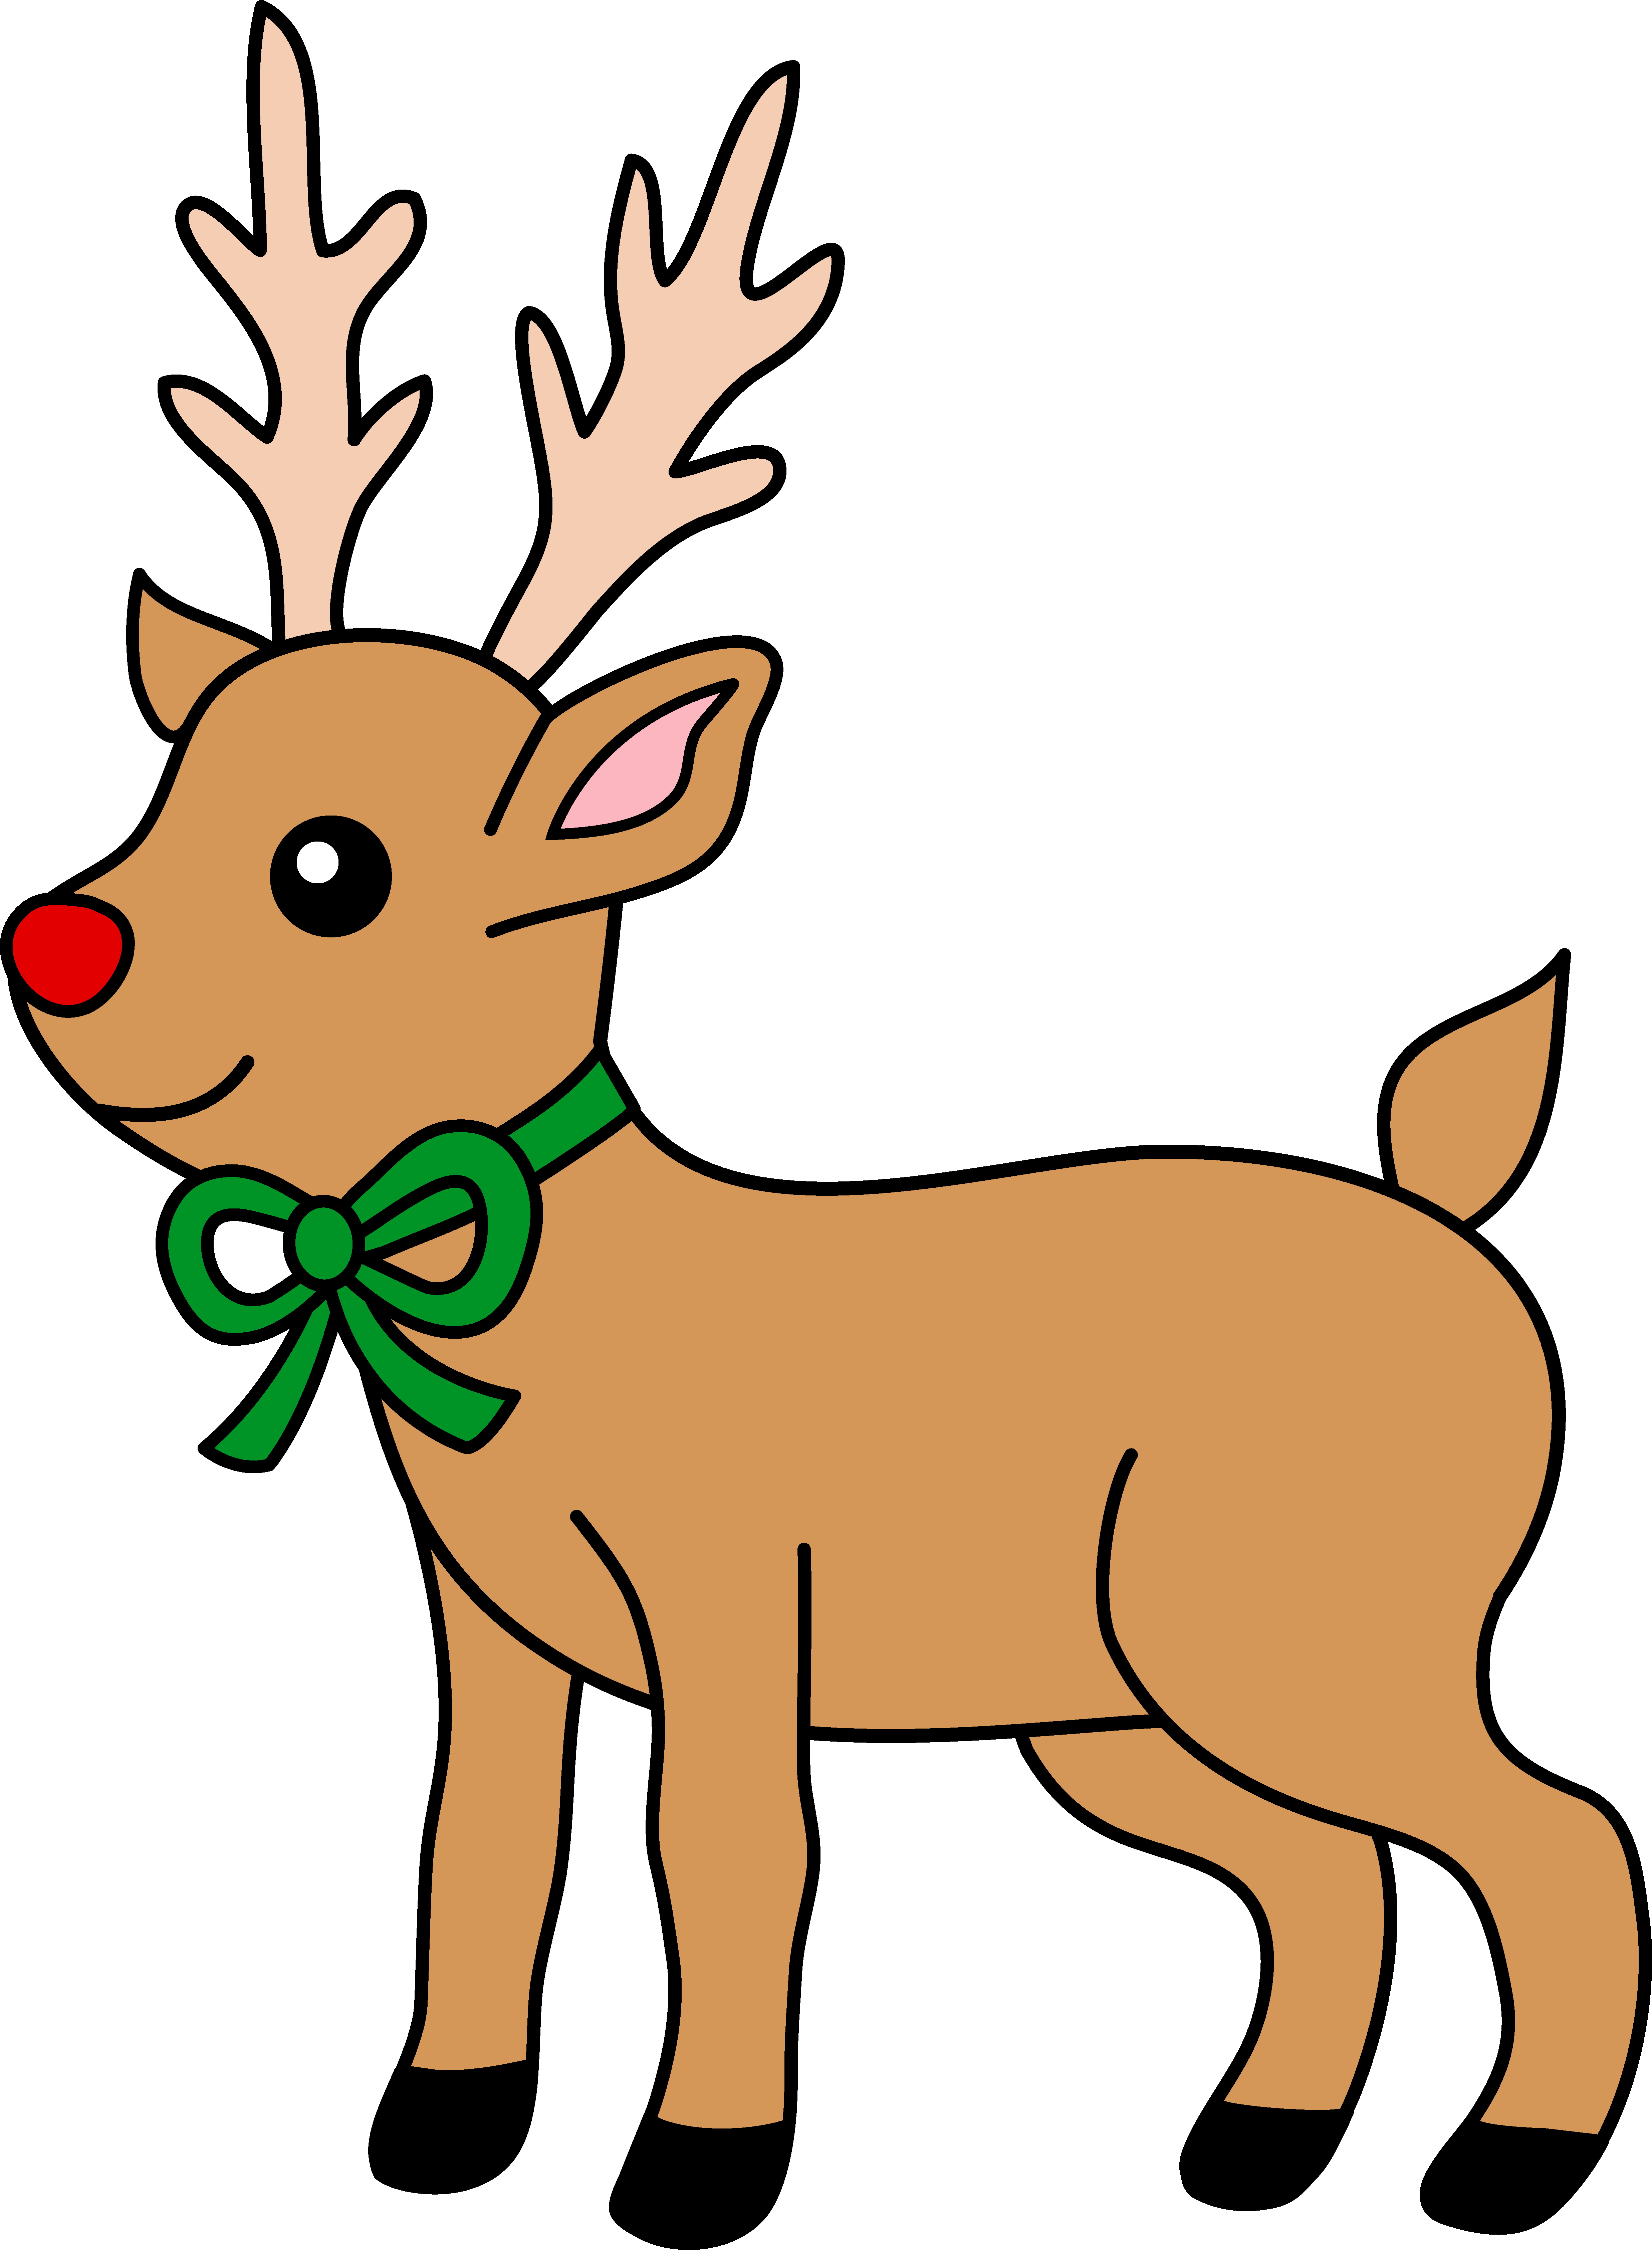 Cute Red-Nosed Reindeer Clipart - Free Clip Art